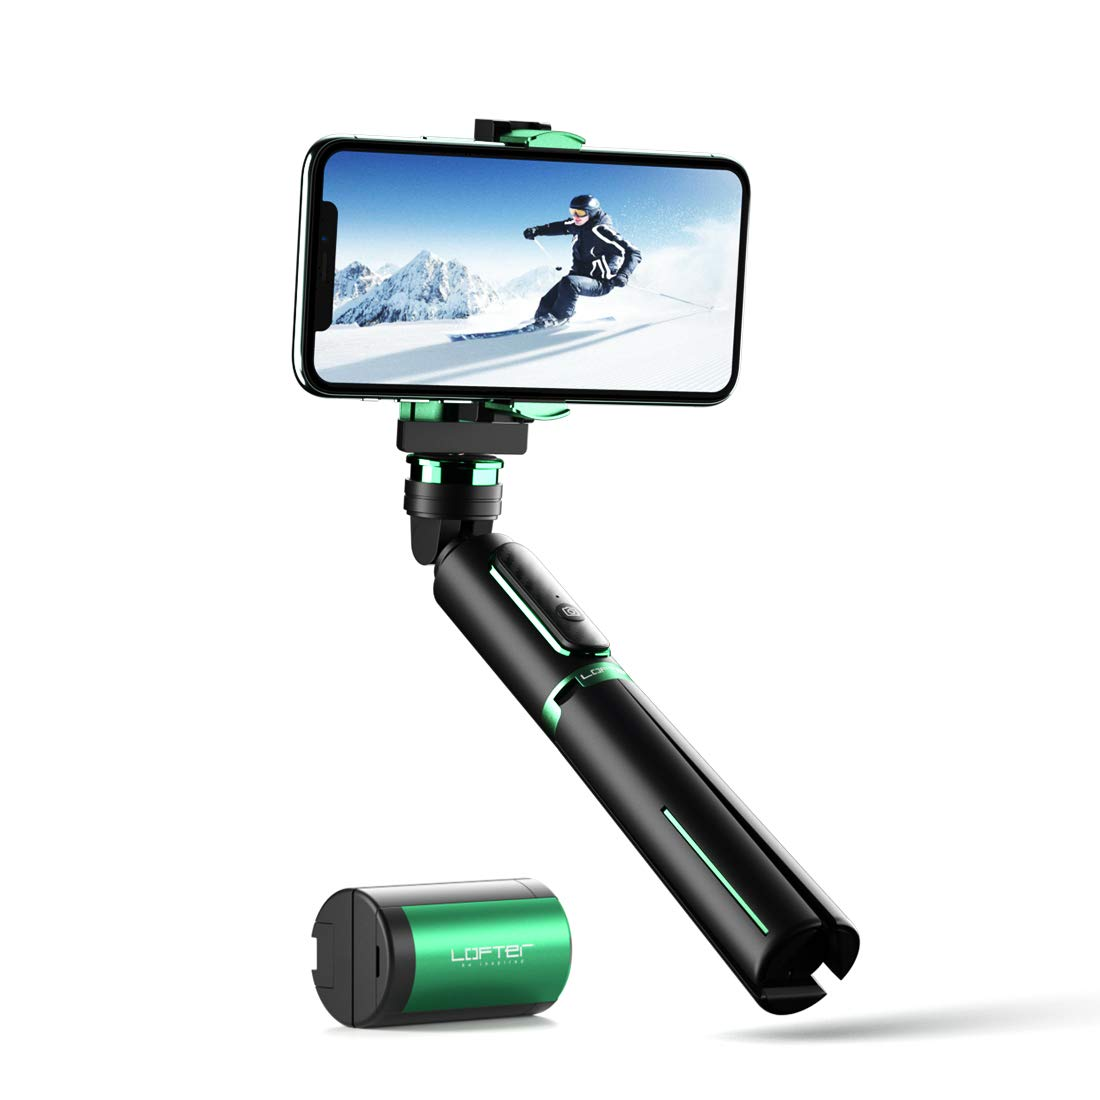 Gimbal Stabilizer, Lofter Selfie Stick Tripod 3 in 1 Handheld Phone Gimbal Extendable with Wireless Remote, Auto Balance Stabilizer for Smartphone and GoPro, TikTok Vlogging Live Stream Accessories